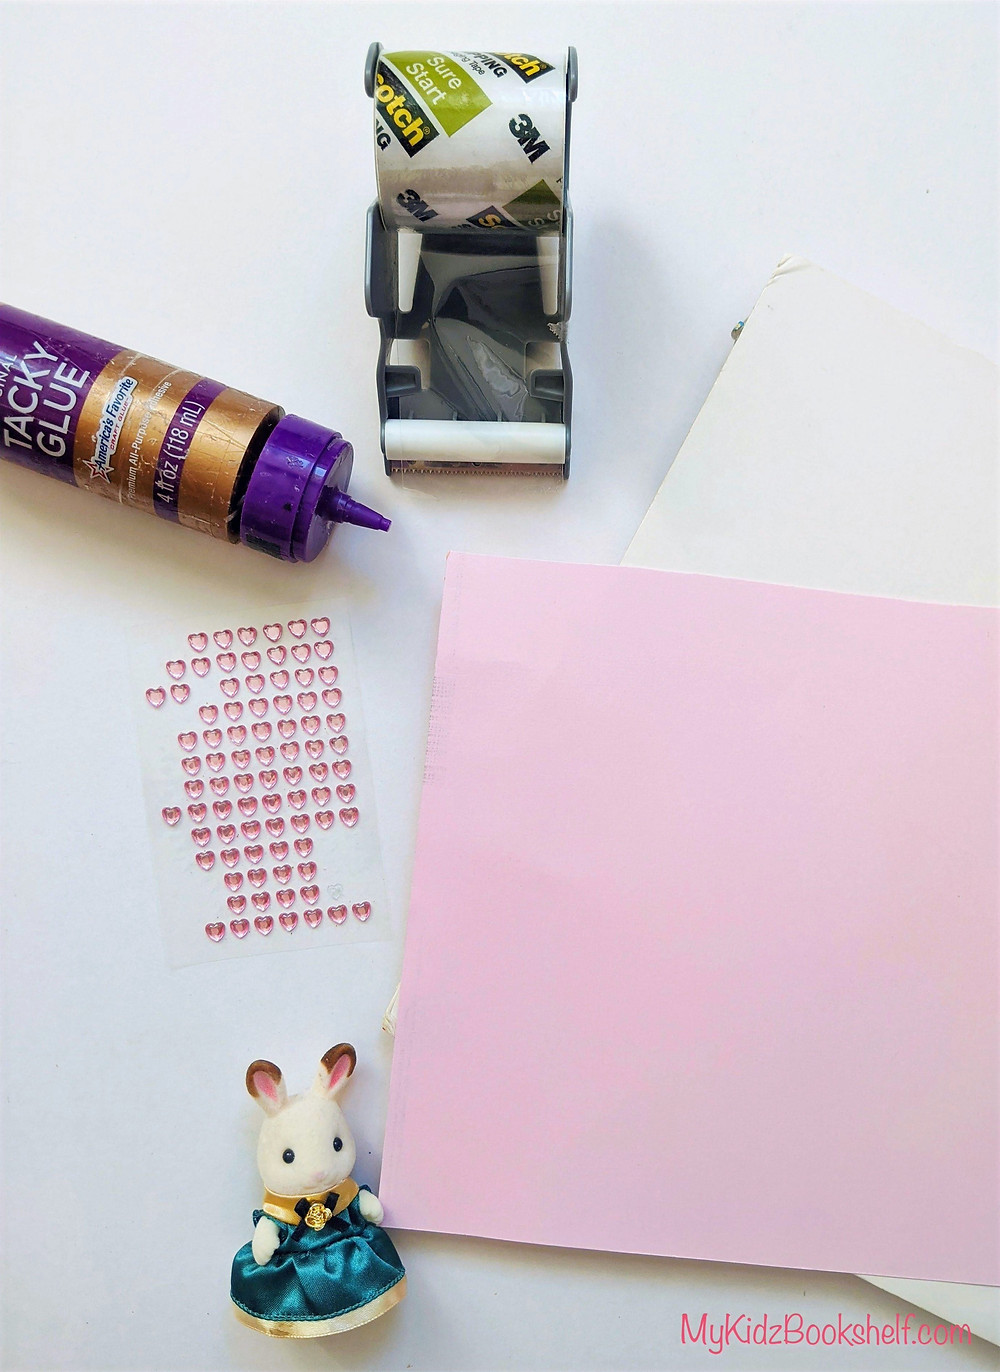 glue, tape, Calico Critter bunny, scrapbook paper, heart shaped sticky gems